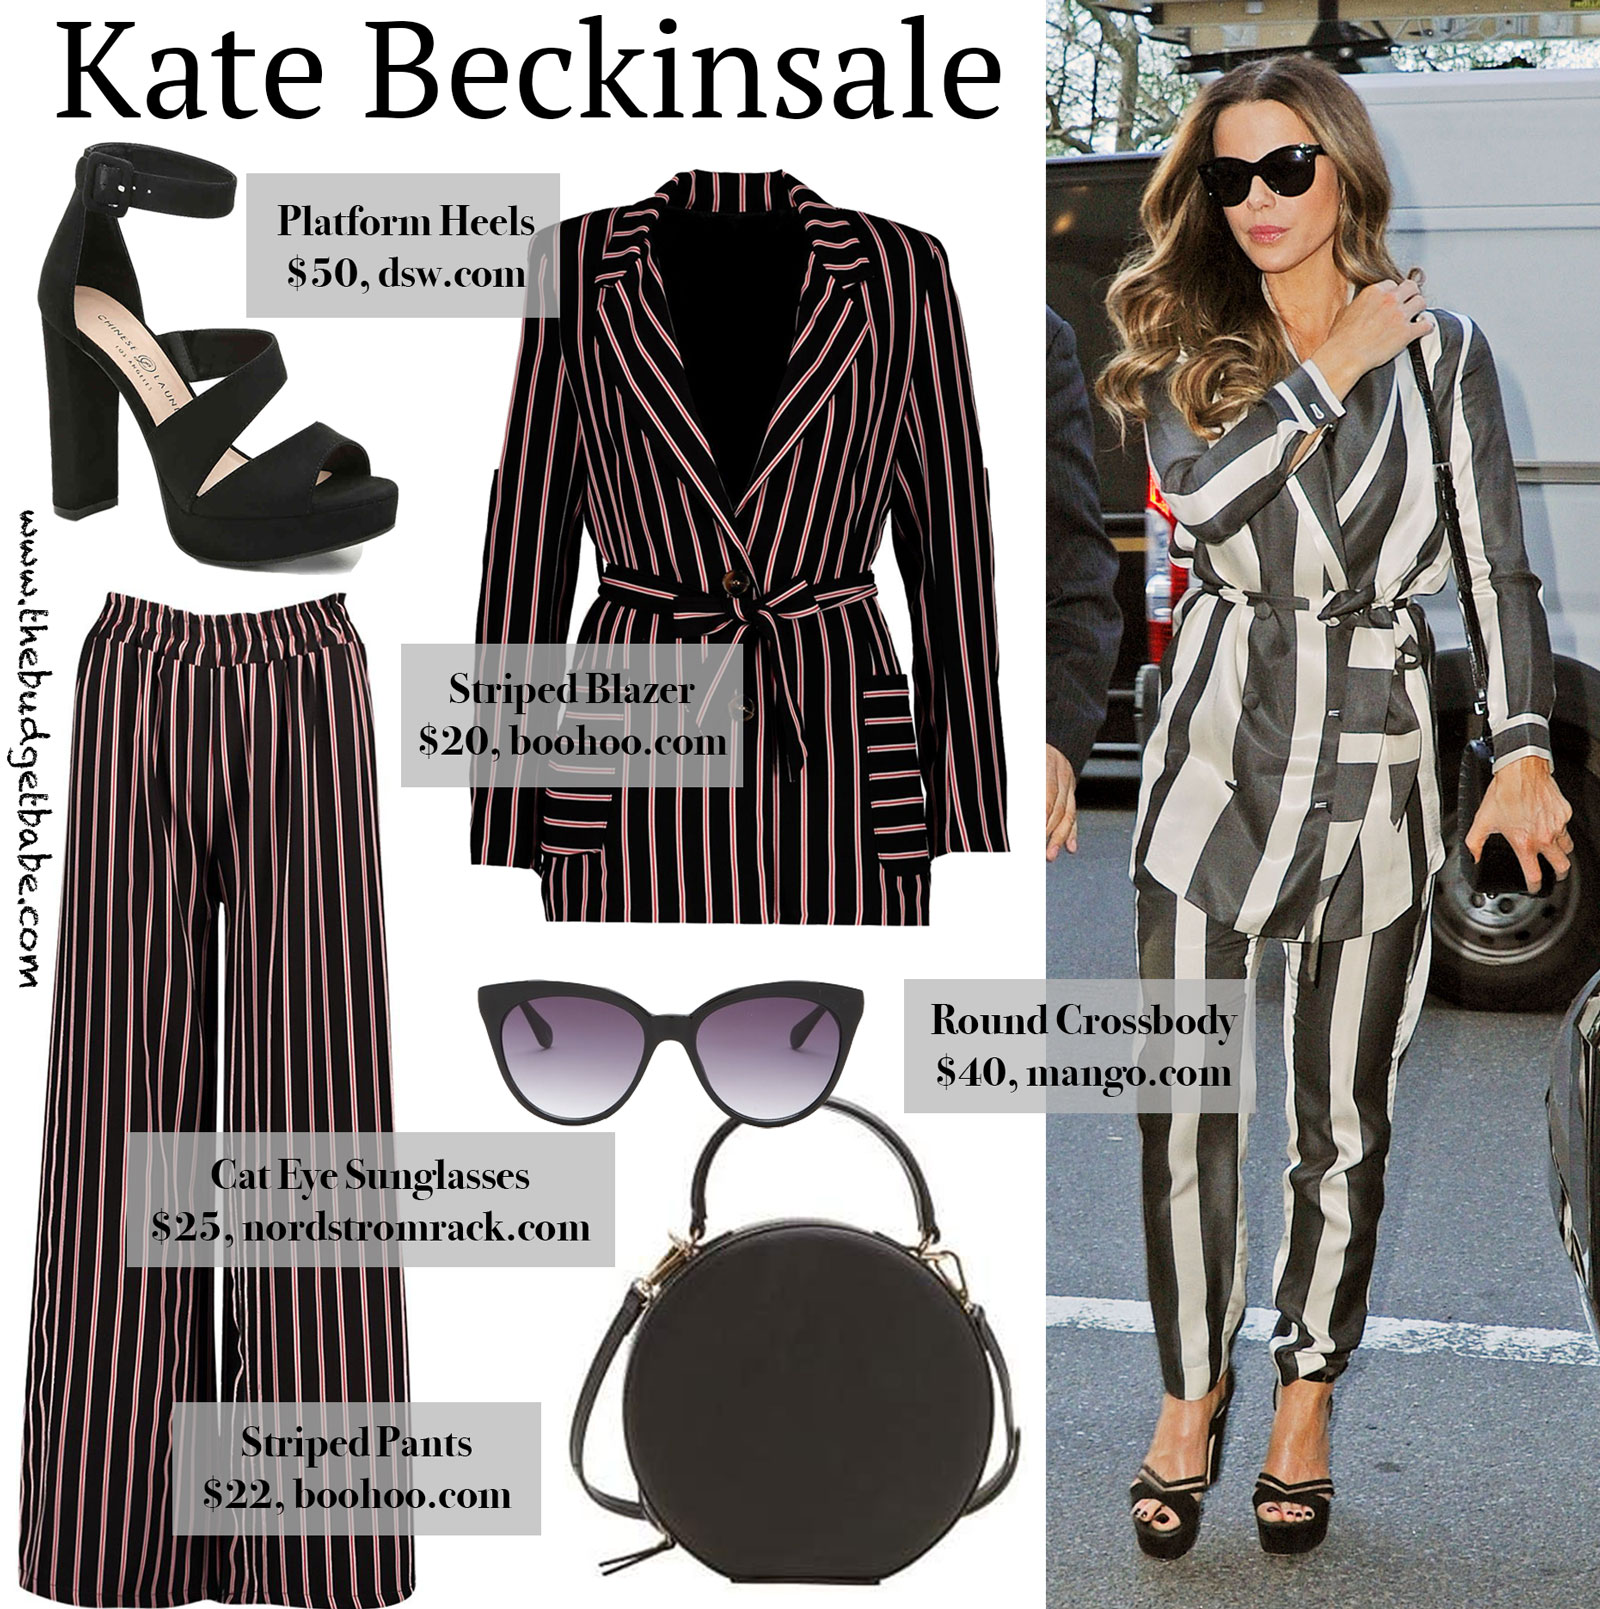 Kate Beckinsale Striped Pants and Blazer Look for Less